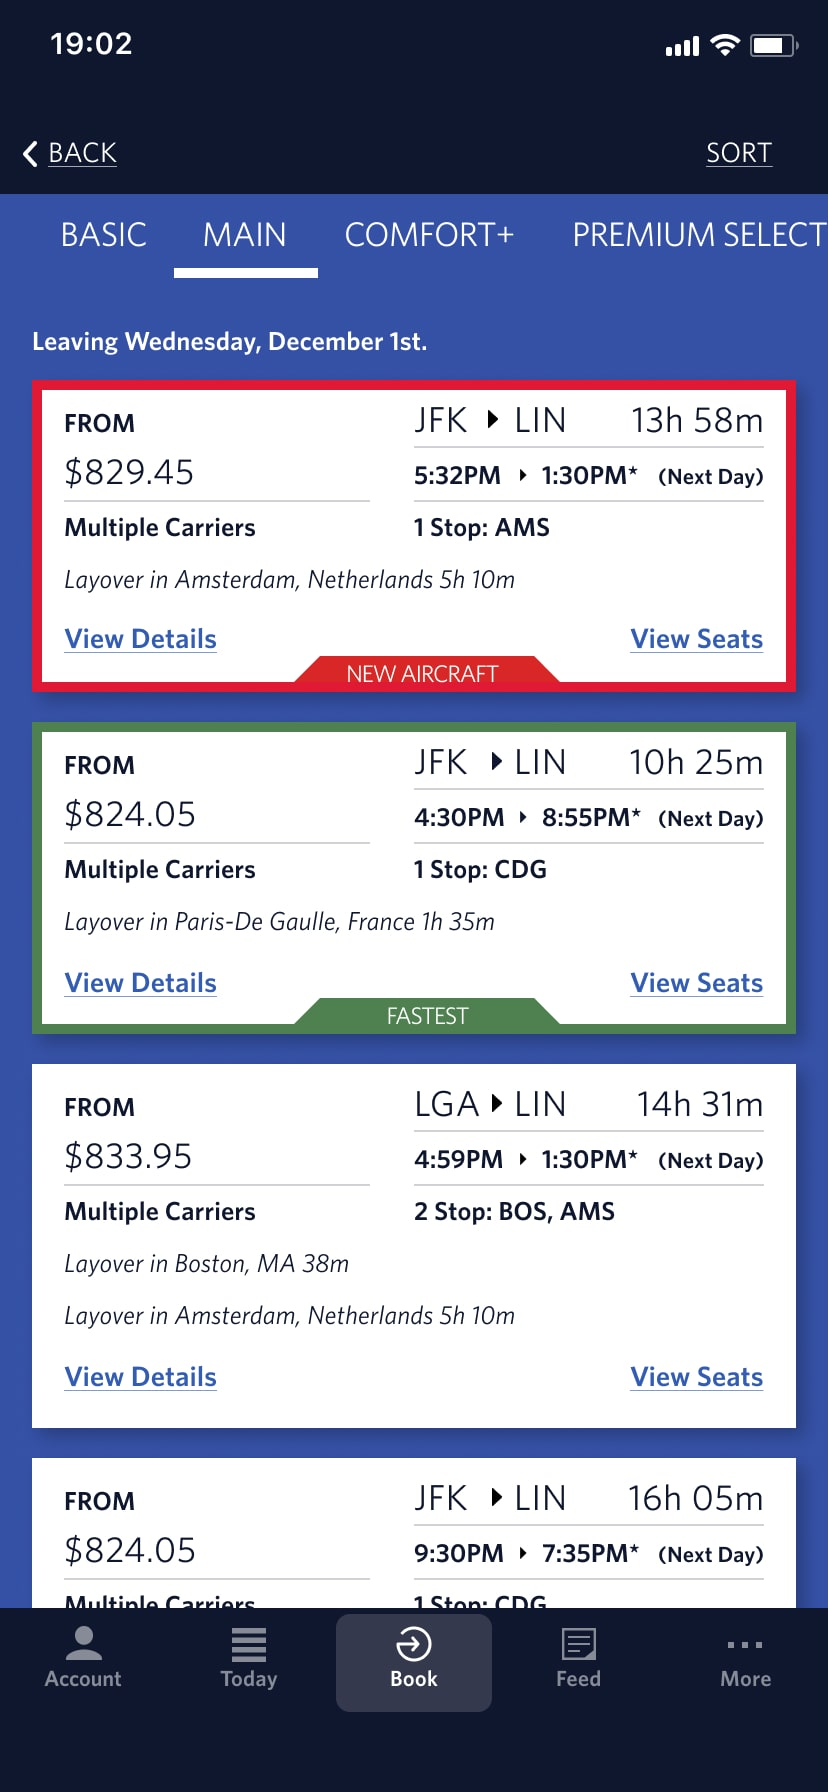 a screen shot of a redesigned delta airlines booking screen